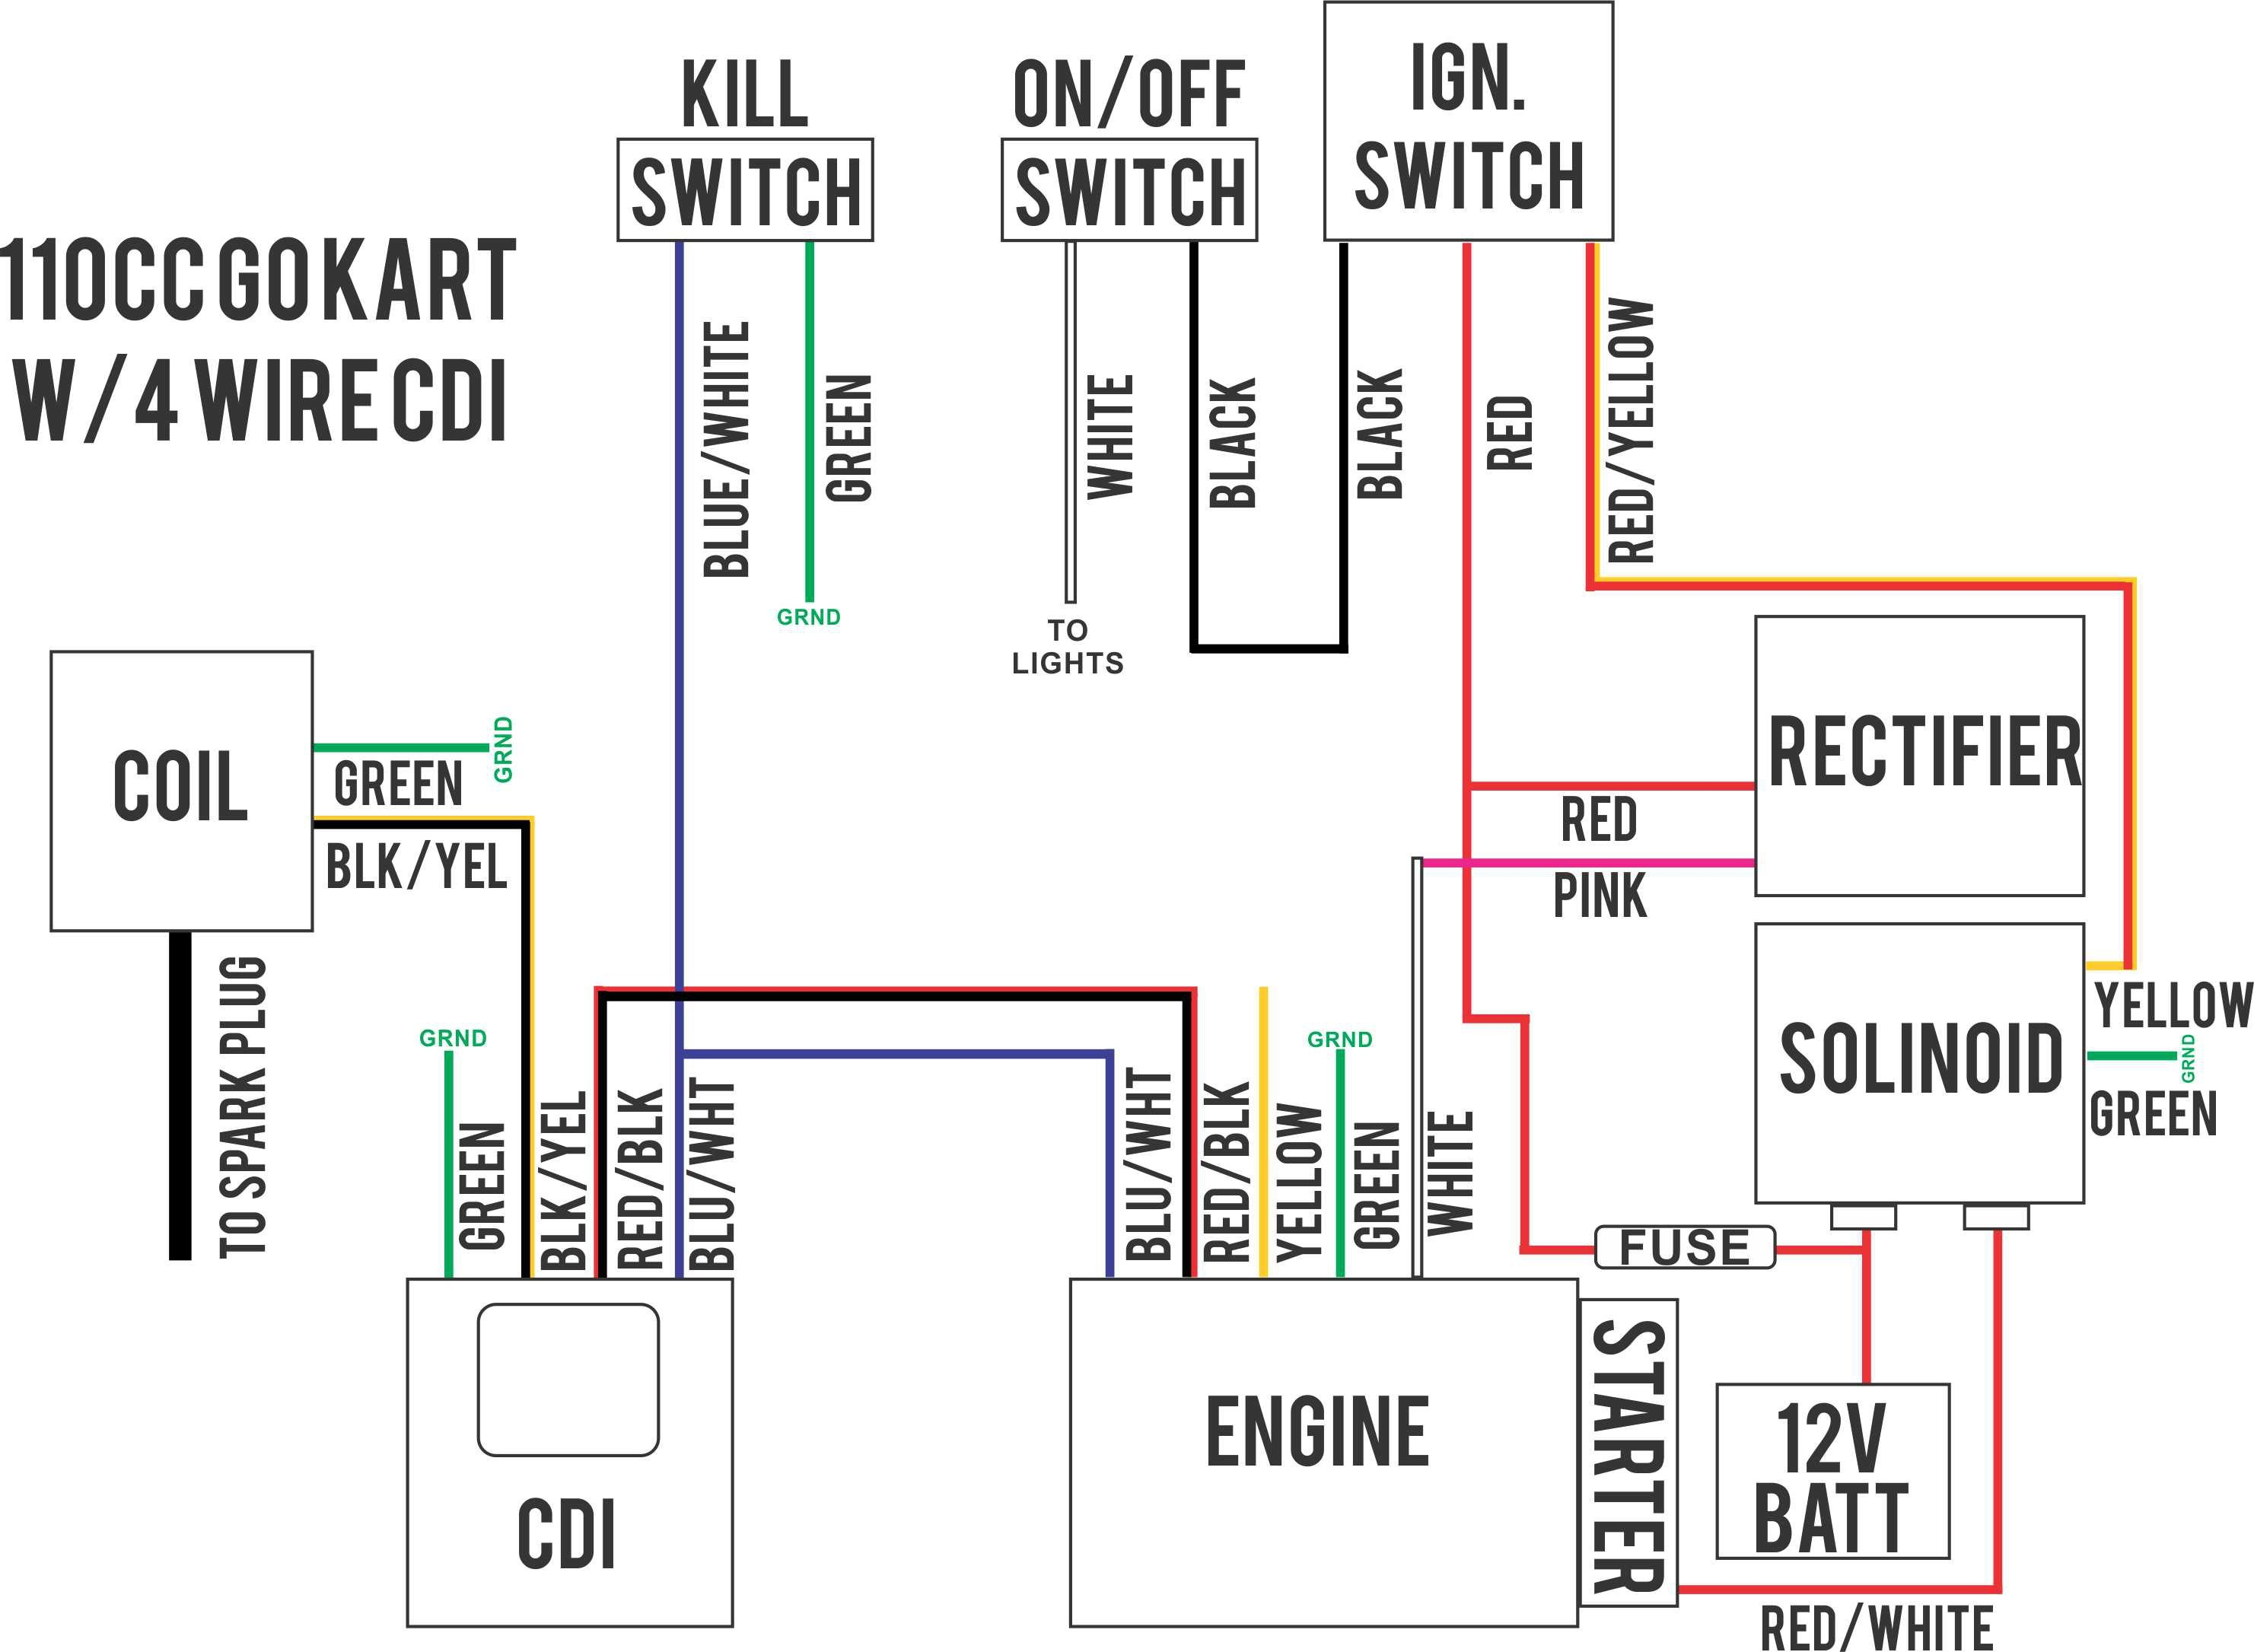 50cc scooter engine diagram electrical diagrams forum u2022 rh jimmellon co uk 50cc moped engine diagram